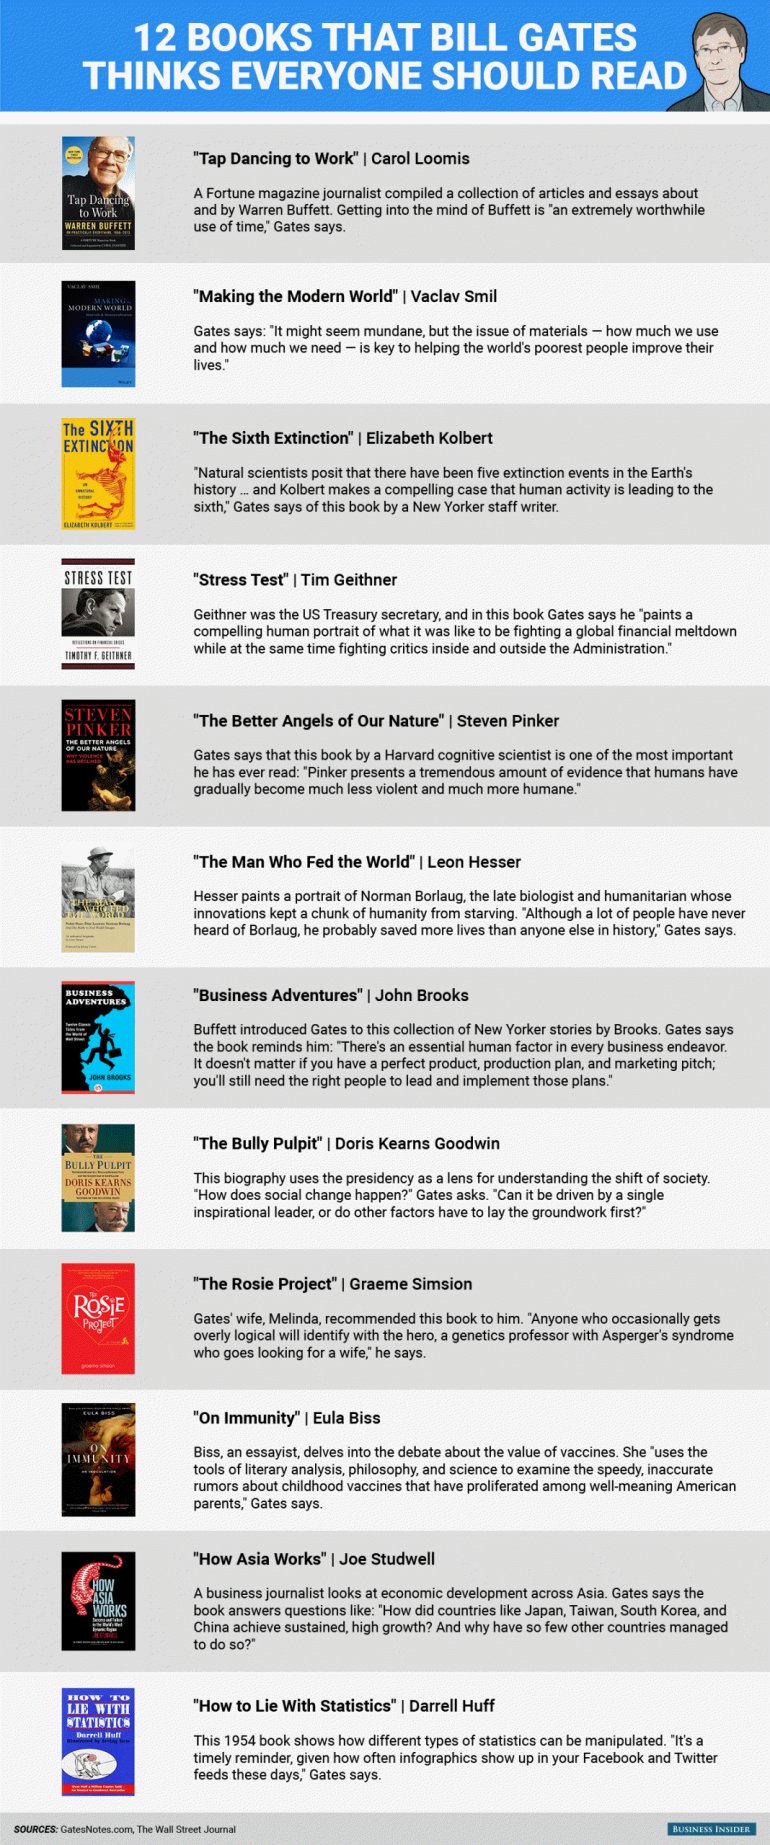 12 Books That Bill Gates Thinks Everyone Should Read Infographic